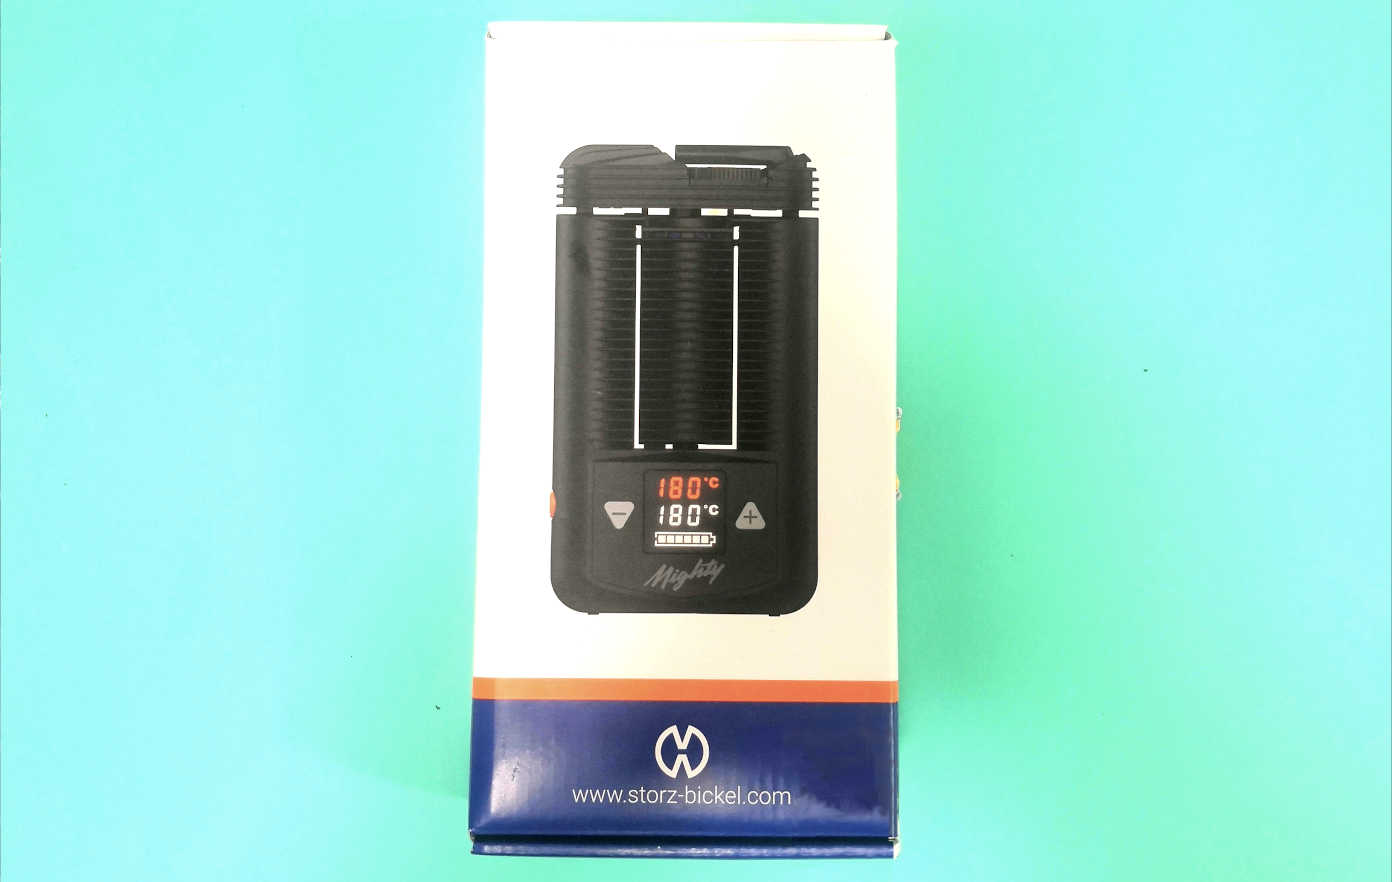 Storz and Bickel Mighty Vaporizer Box